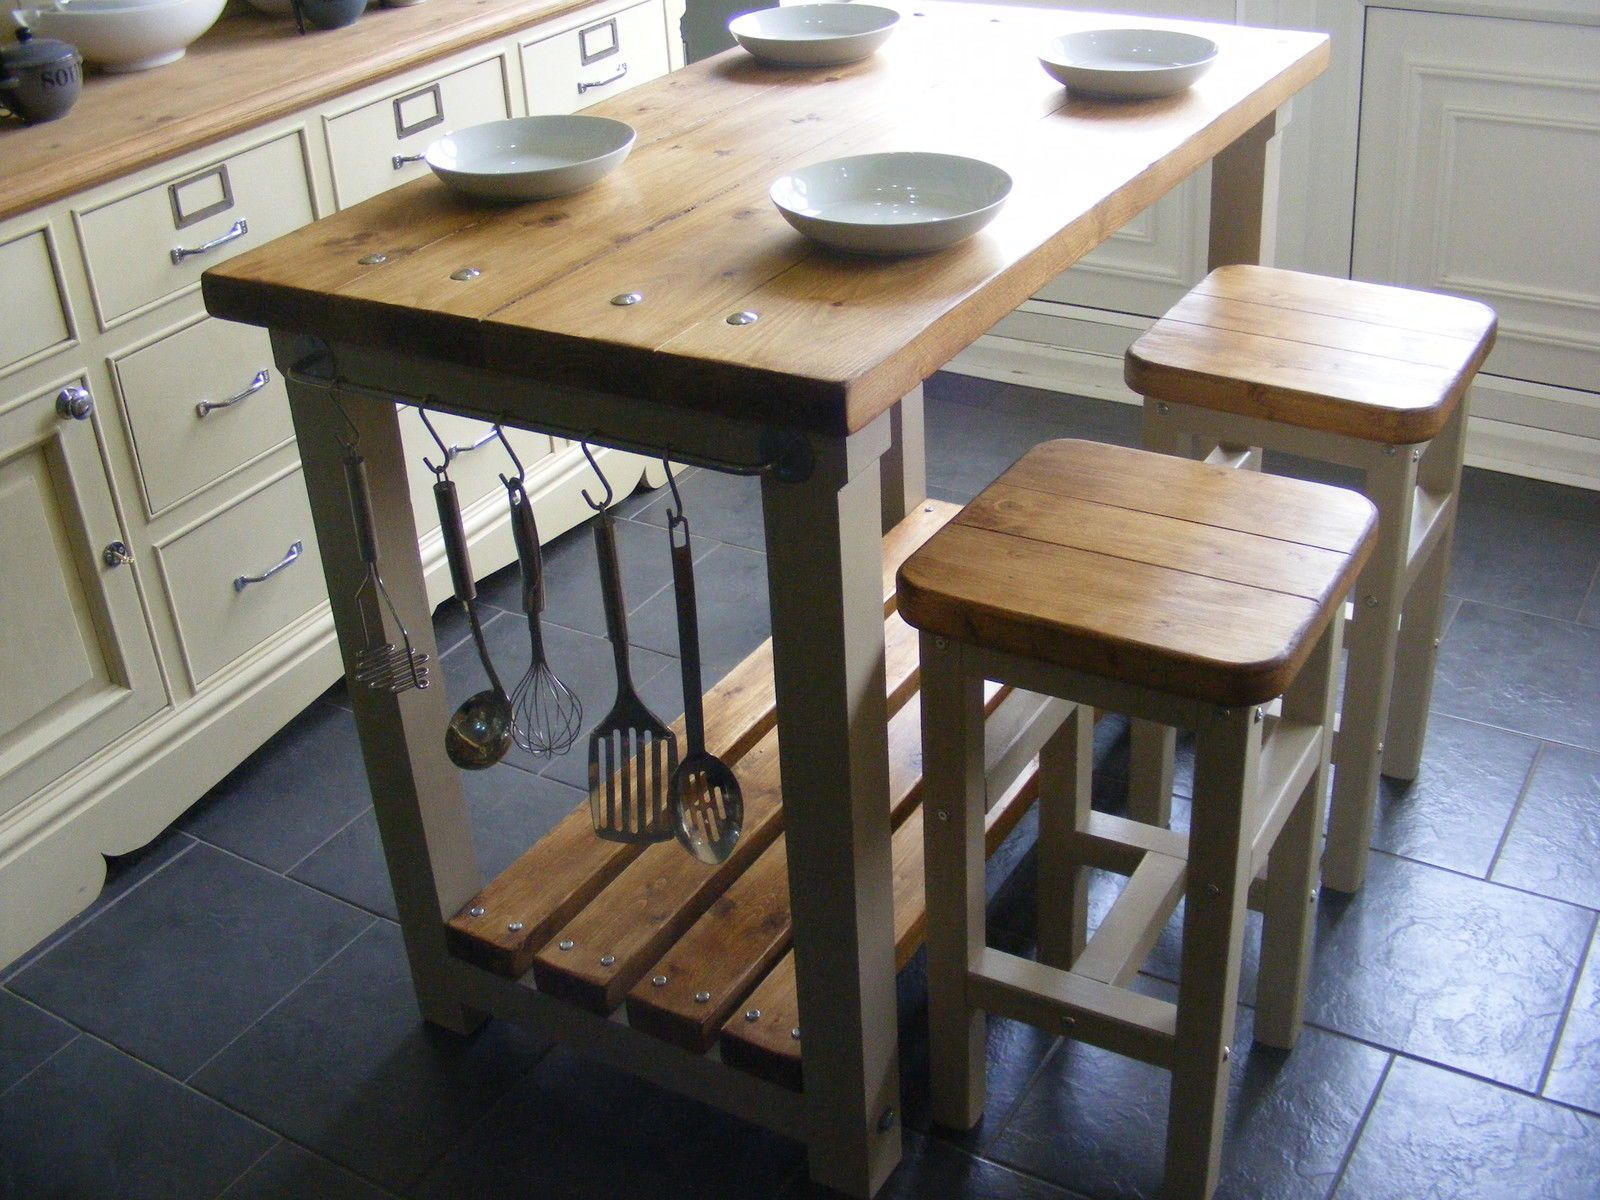 Image result for kitchen work benches with stools | kitchen nook ...